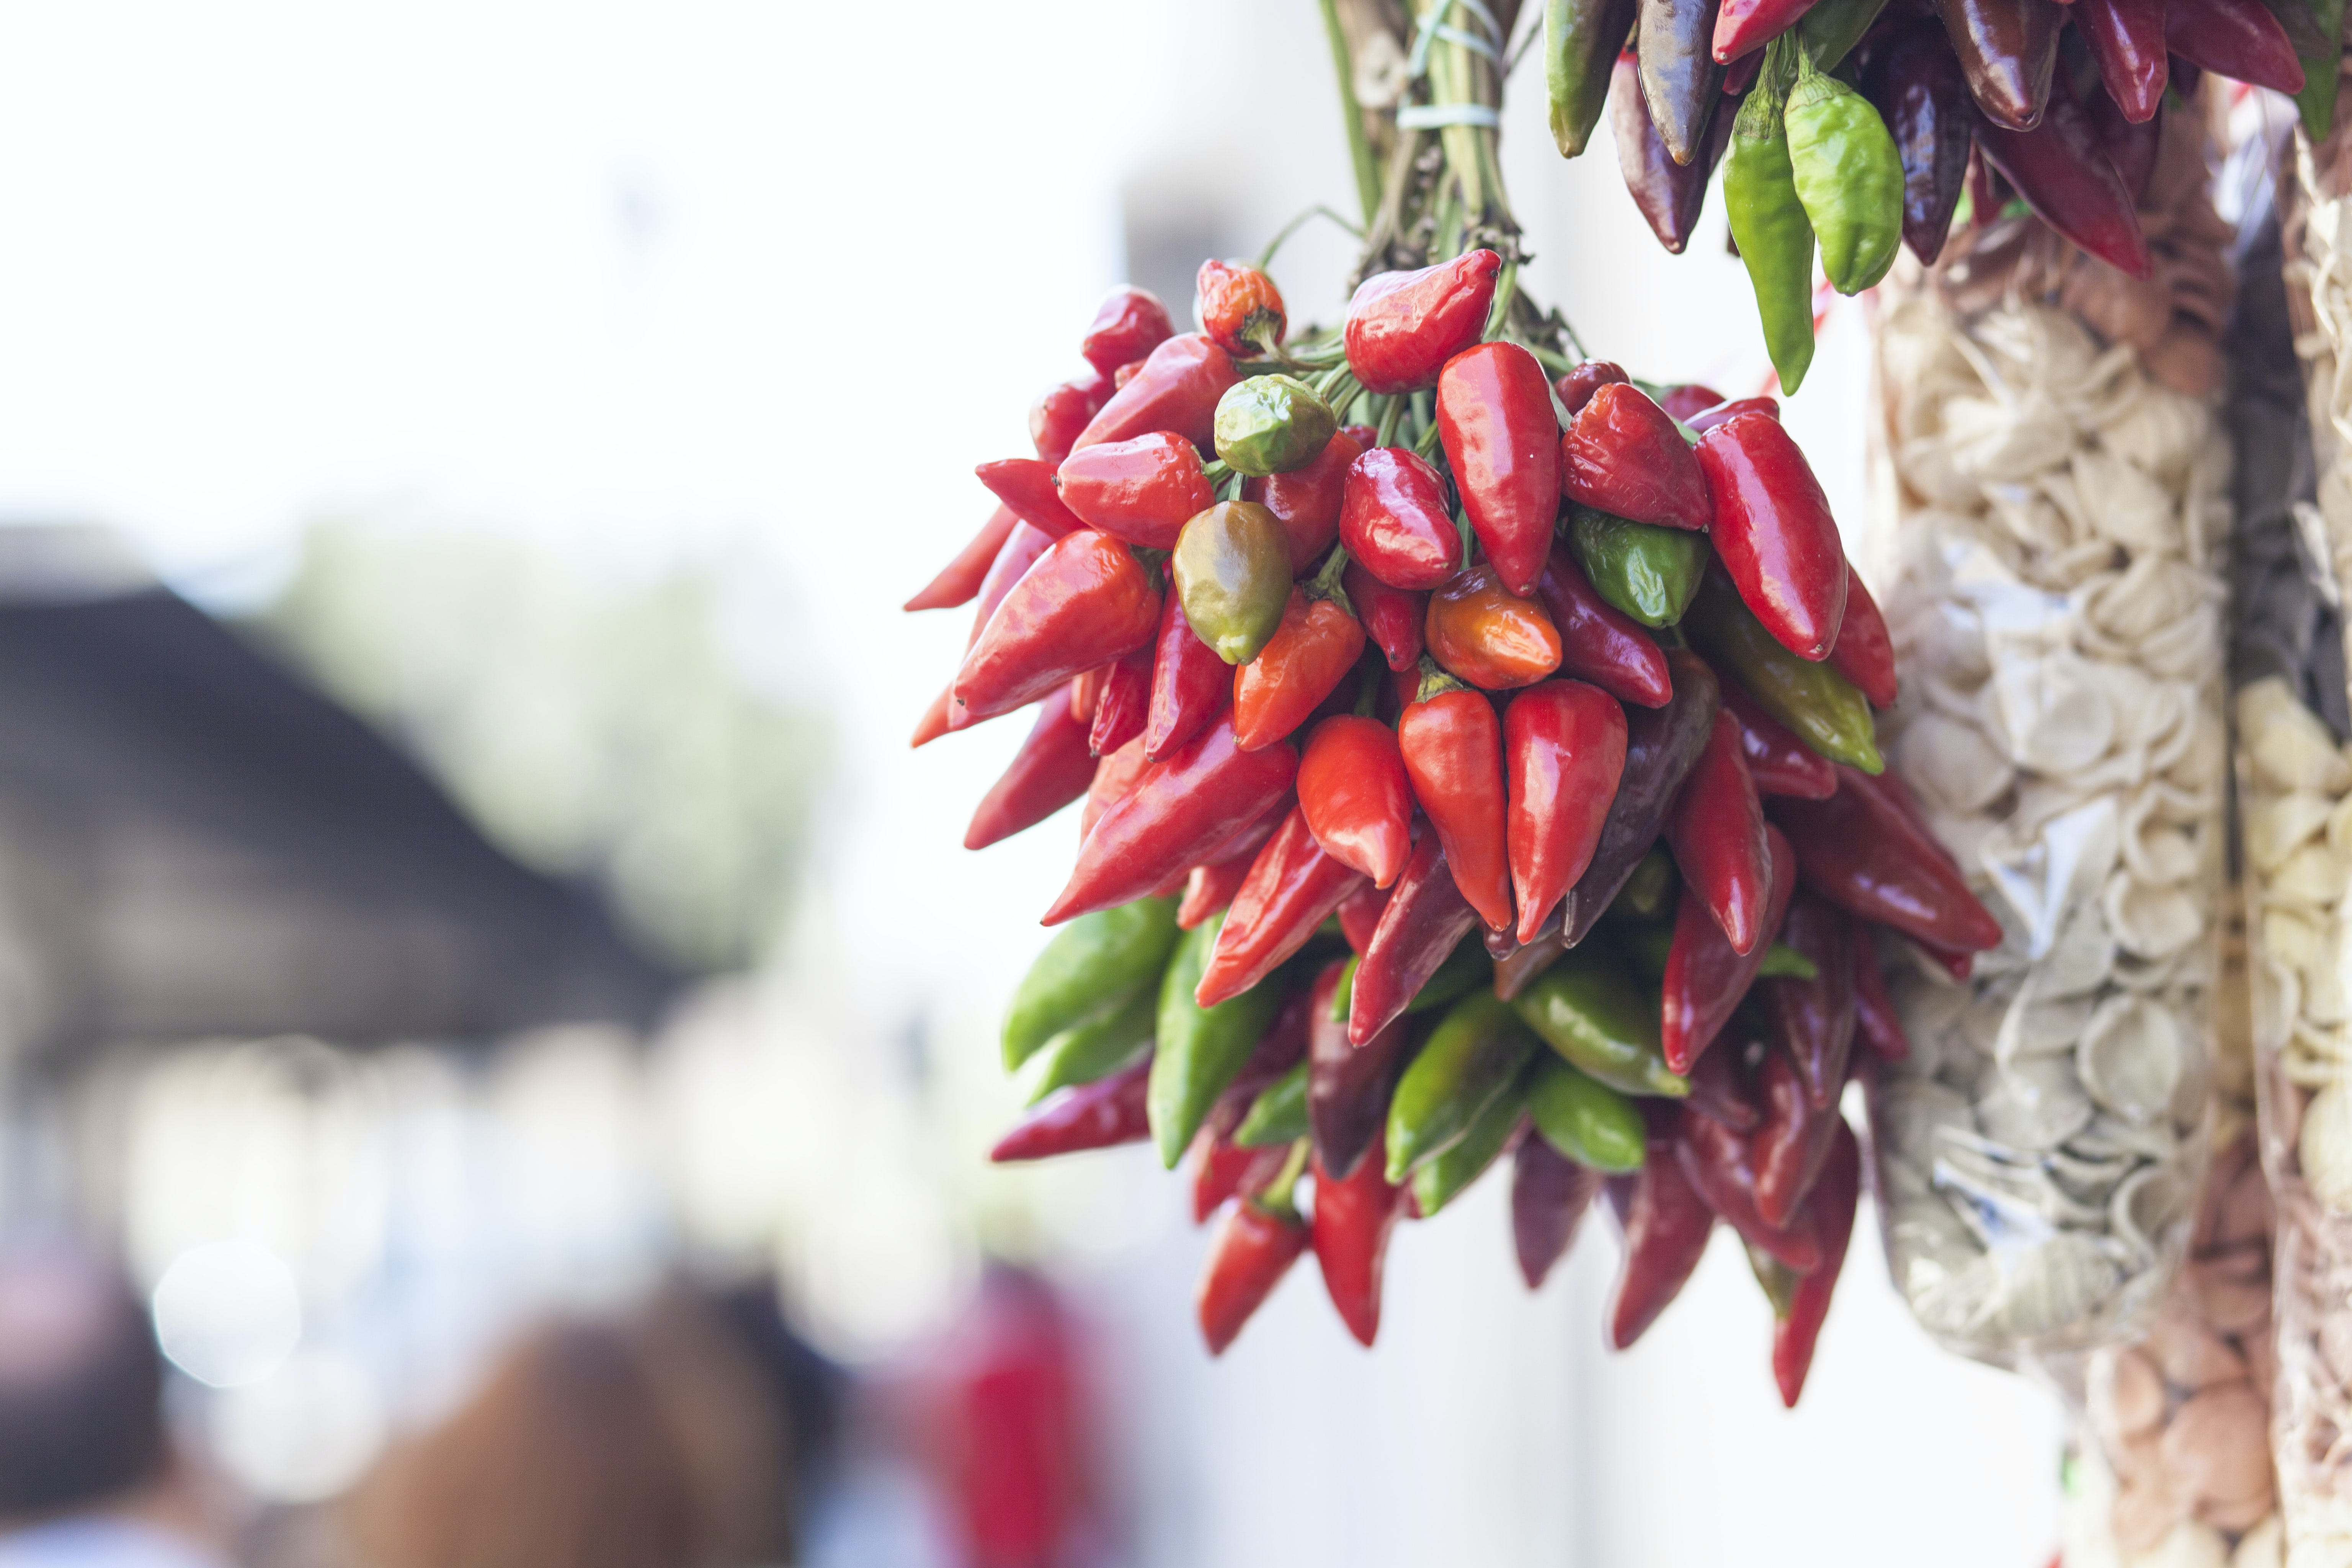 bundle of red and green chili peppers